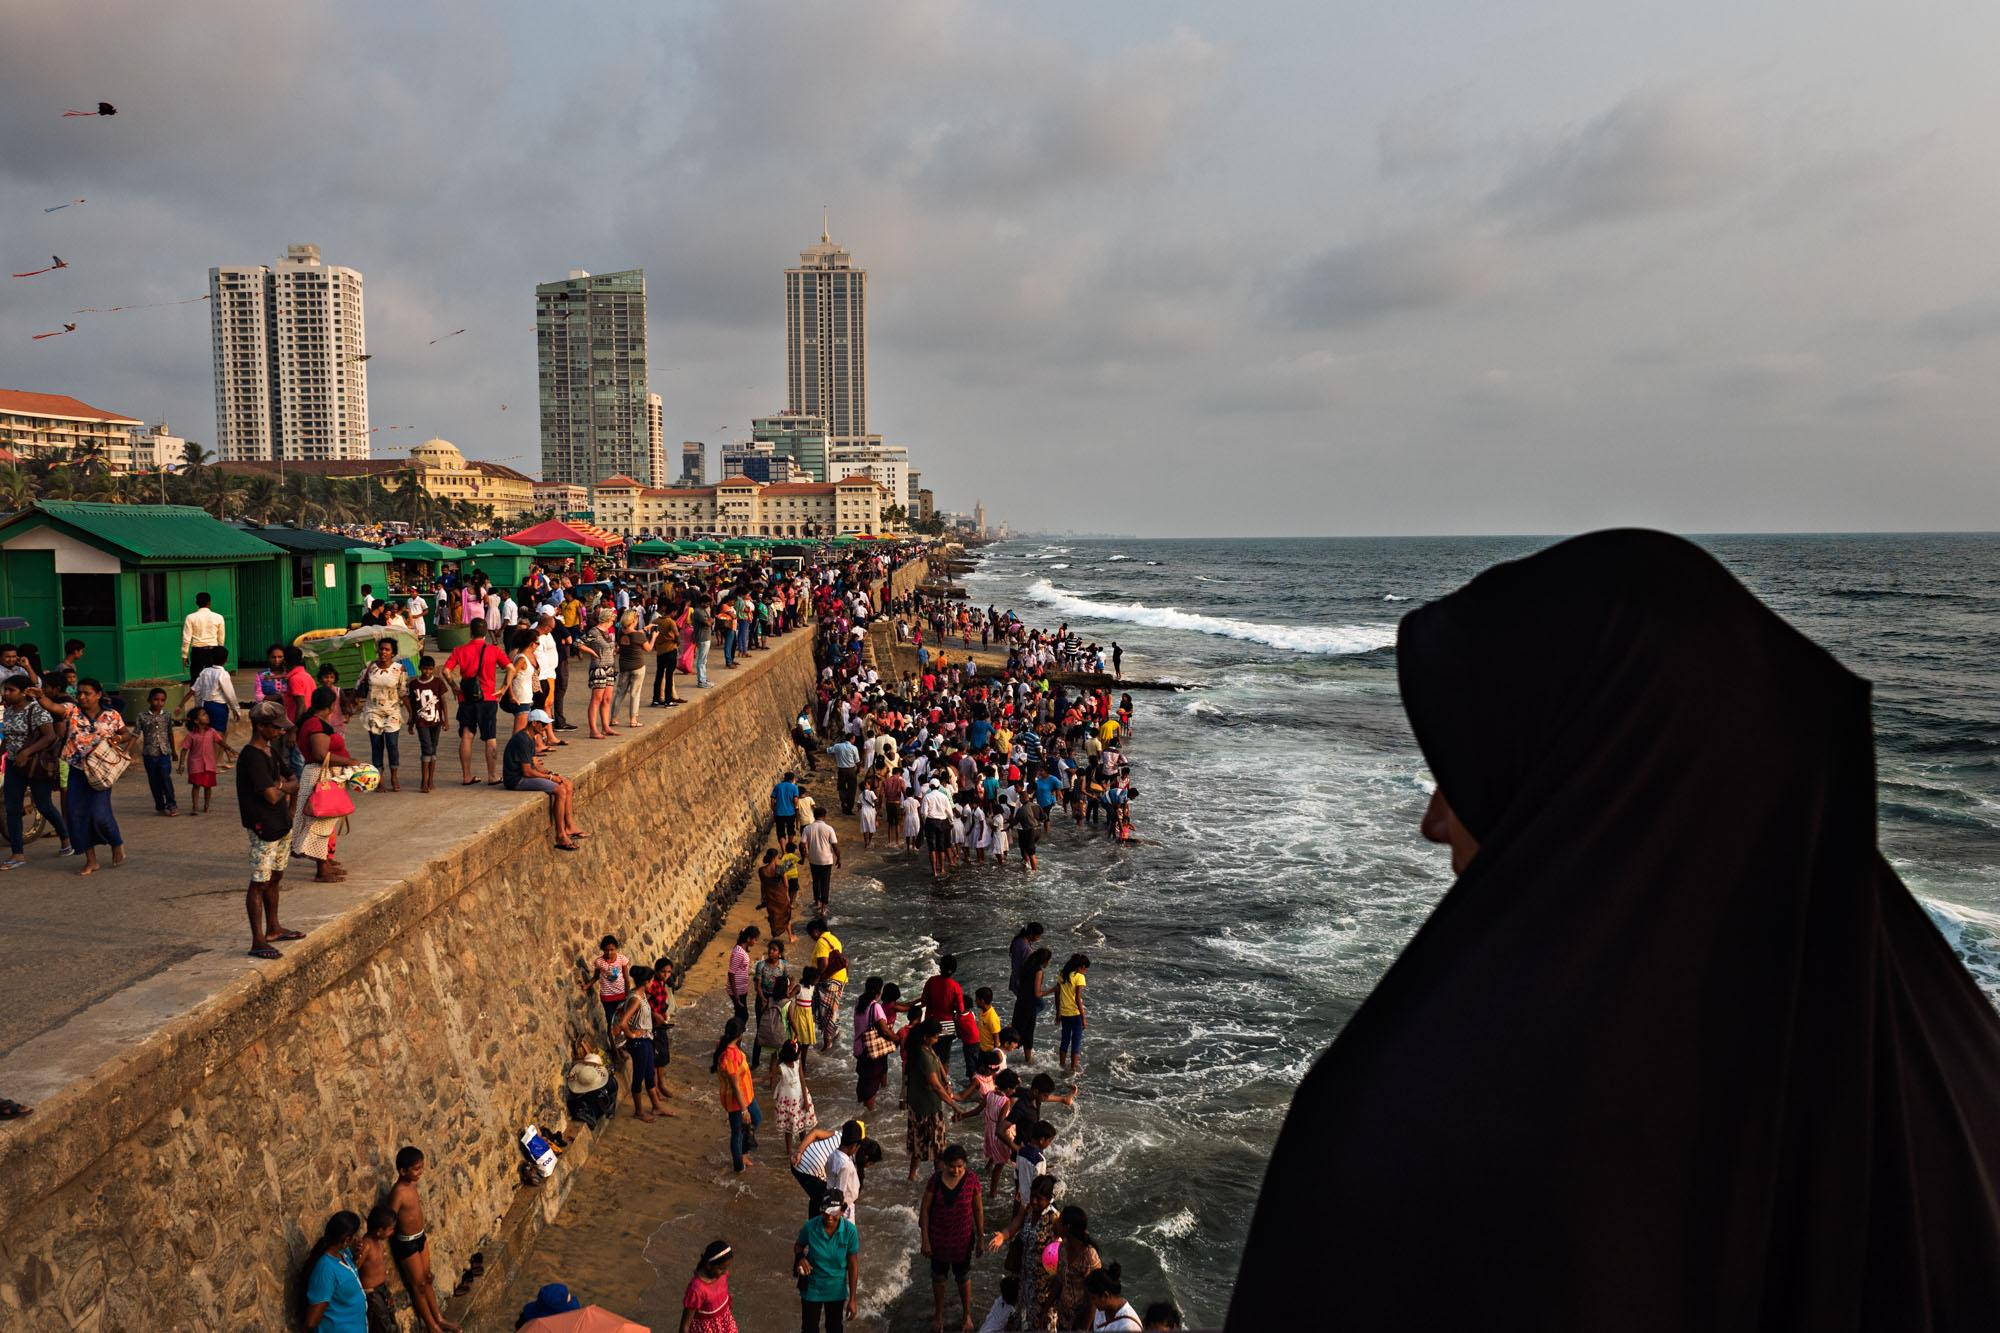 A woman looks out over people enjoying the beach at Galle Face Green in Colombo, Sri Lanka.